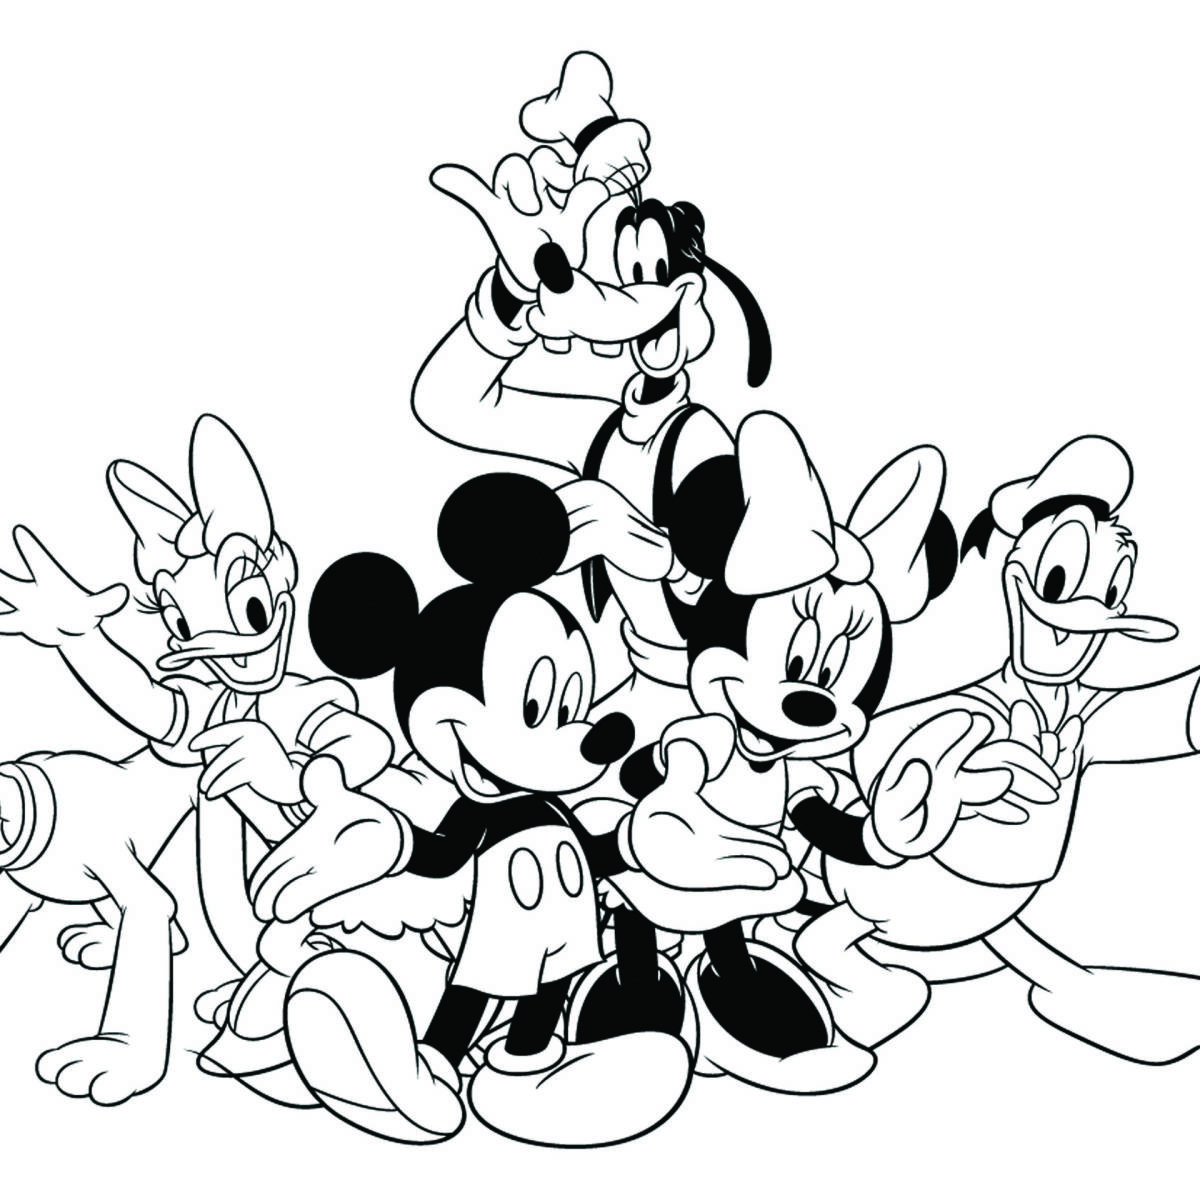 1200x1200 Mickey Mouse And Friends Coloring Pages To Print Newyork